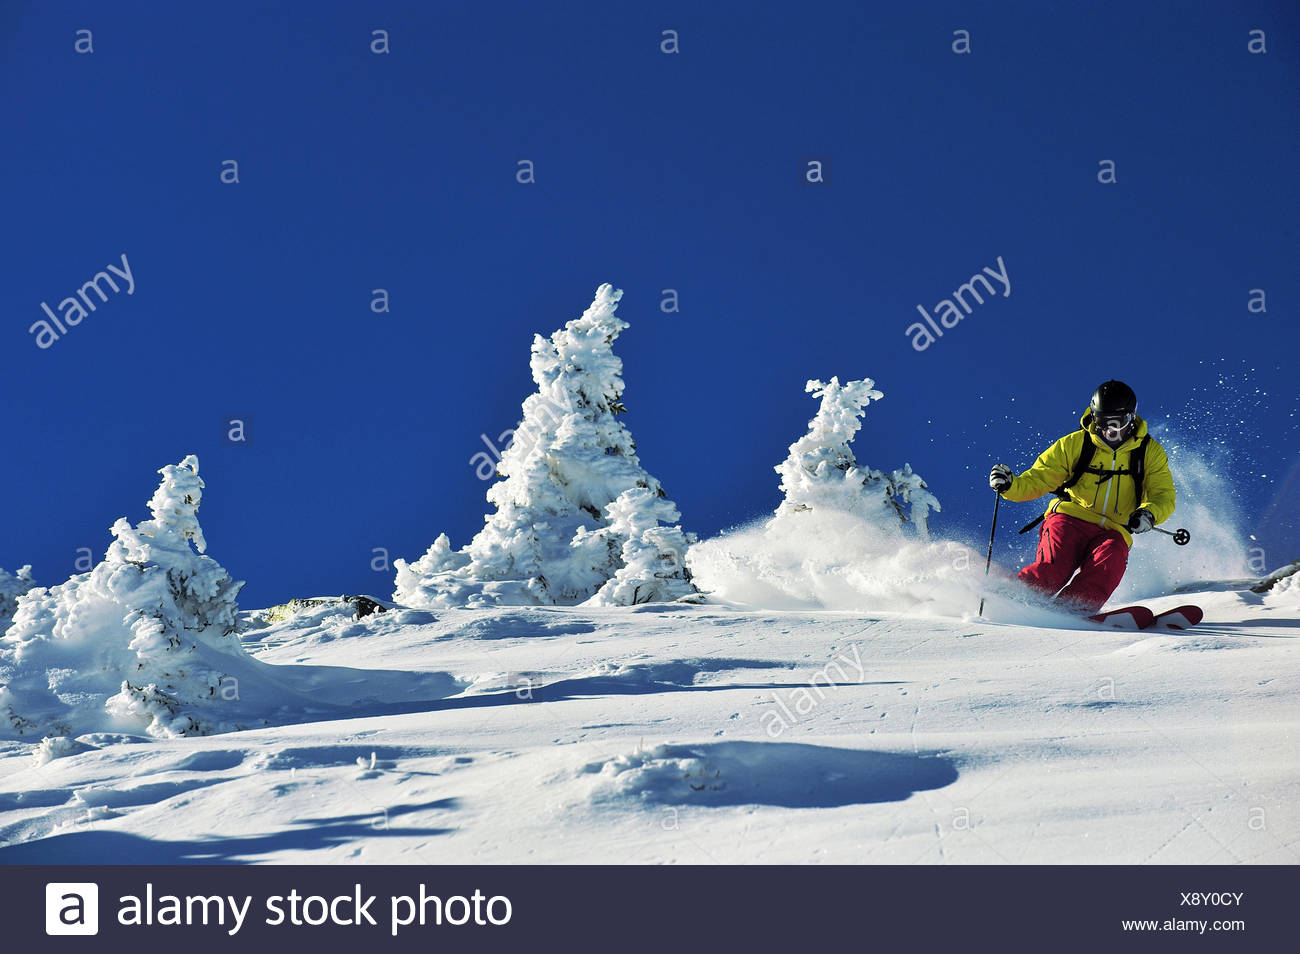 of-piste skiing between snow-covered conifers, France - Stock Image